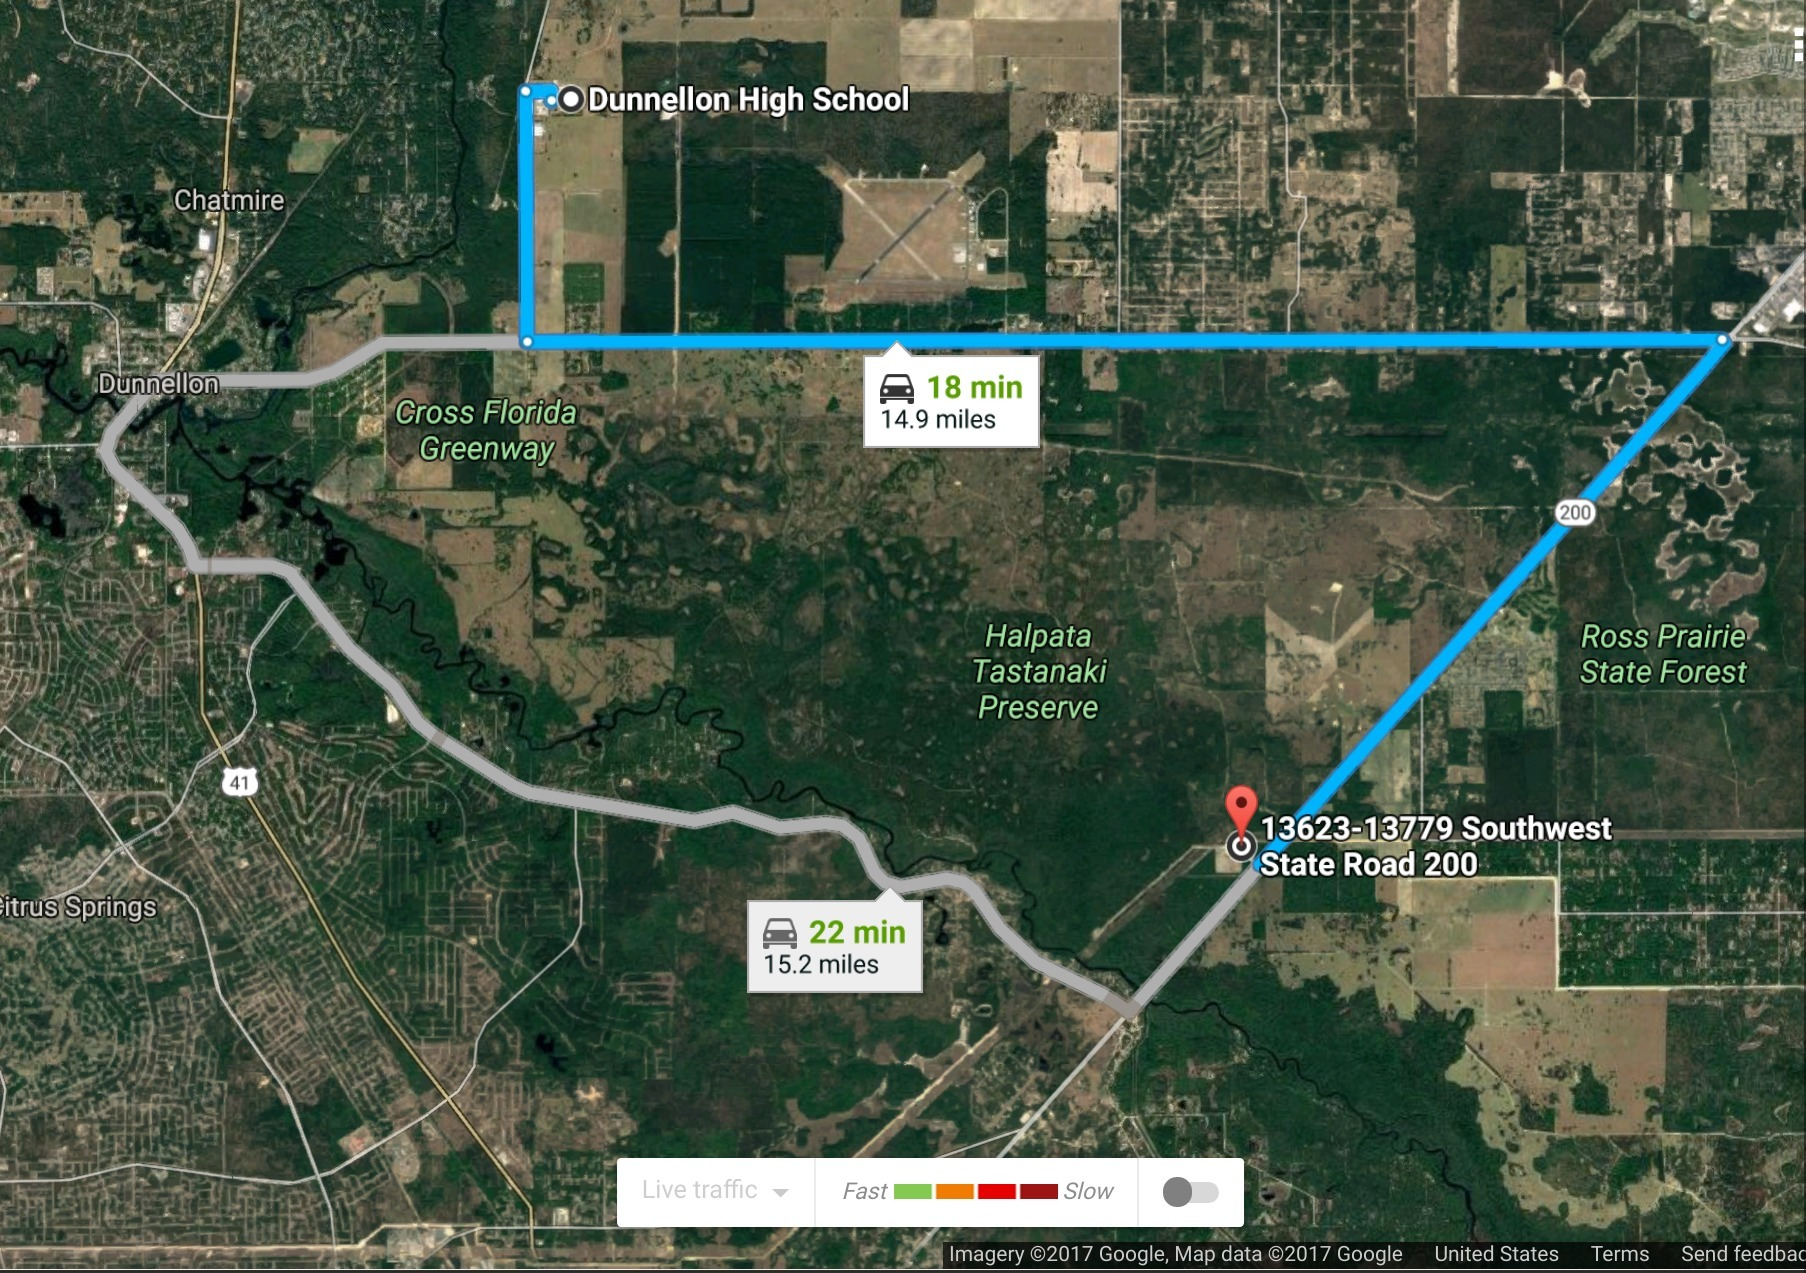 1806x1273 Via FL 200, in Dunnellon High School to Sabal Trail Dunnellon Compressor Station, by John S. Quarterman, for WWALS.net, 31 July 2017